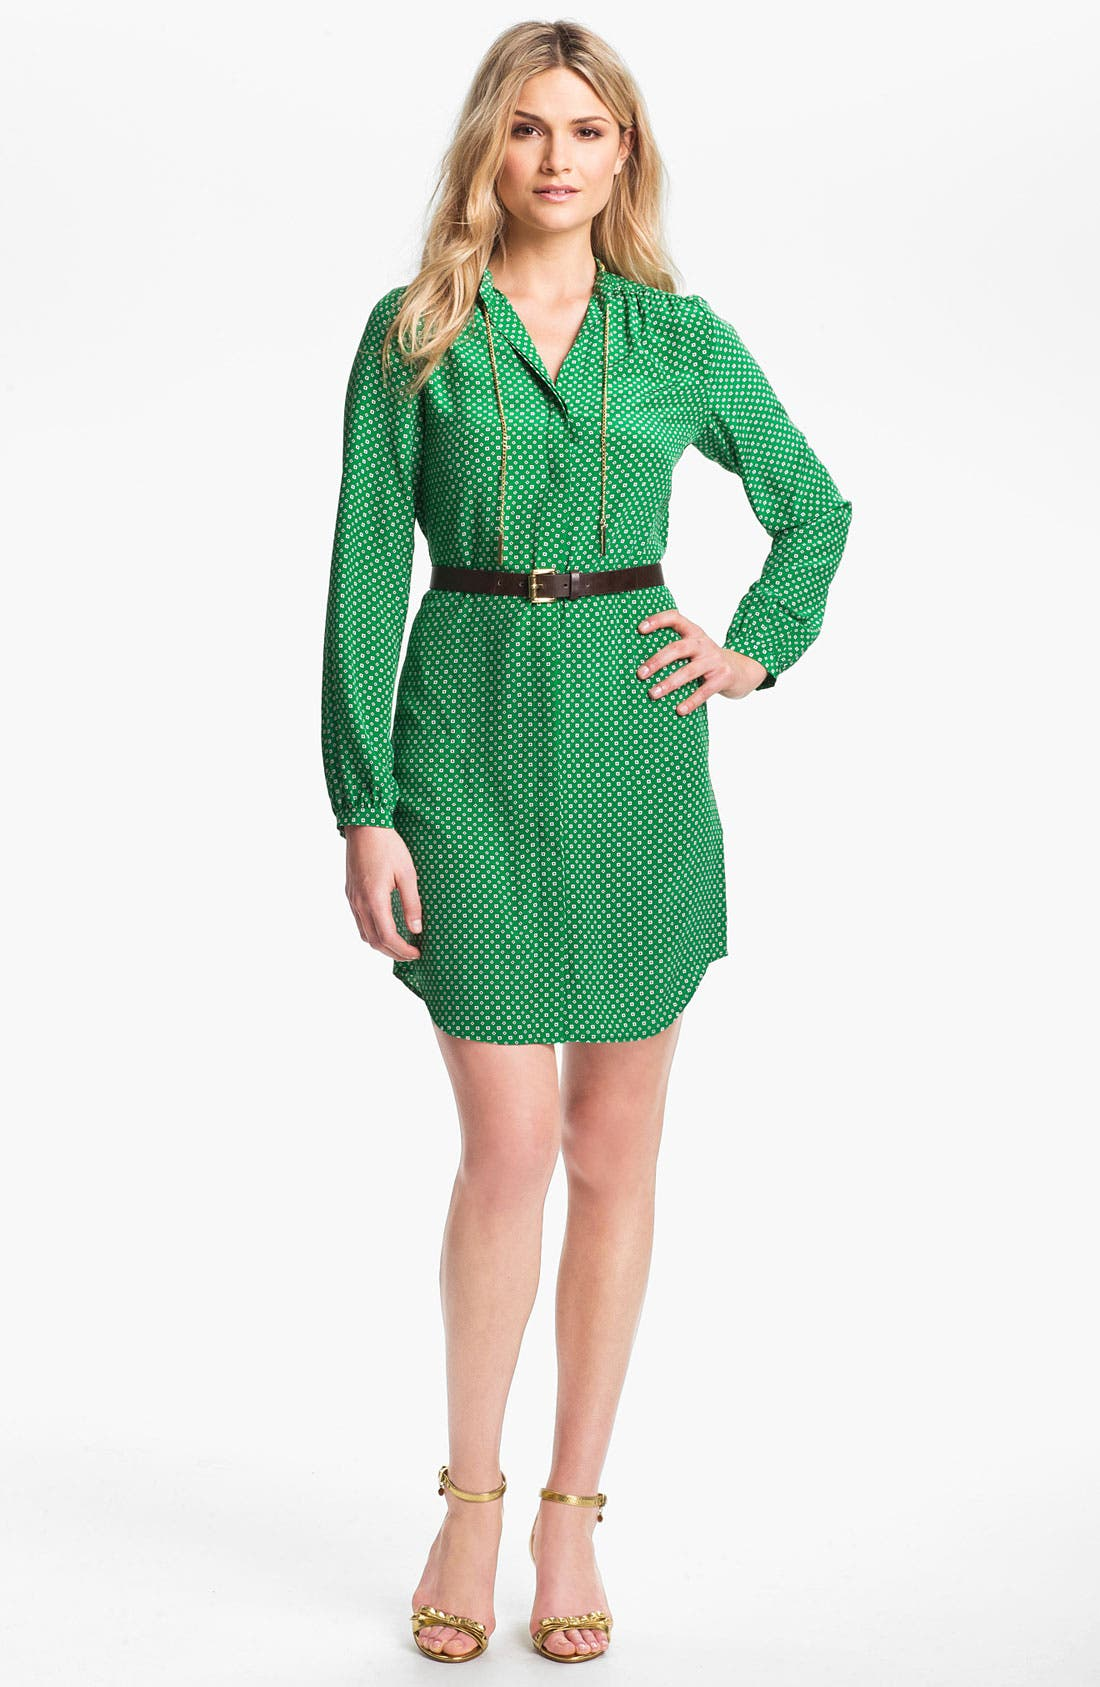 Alternate Image 1 Selected - MICHAEL Michael Kors Chain Trim Shirtdress (Regular & Petite)